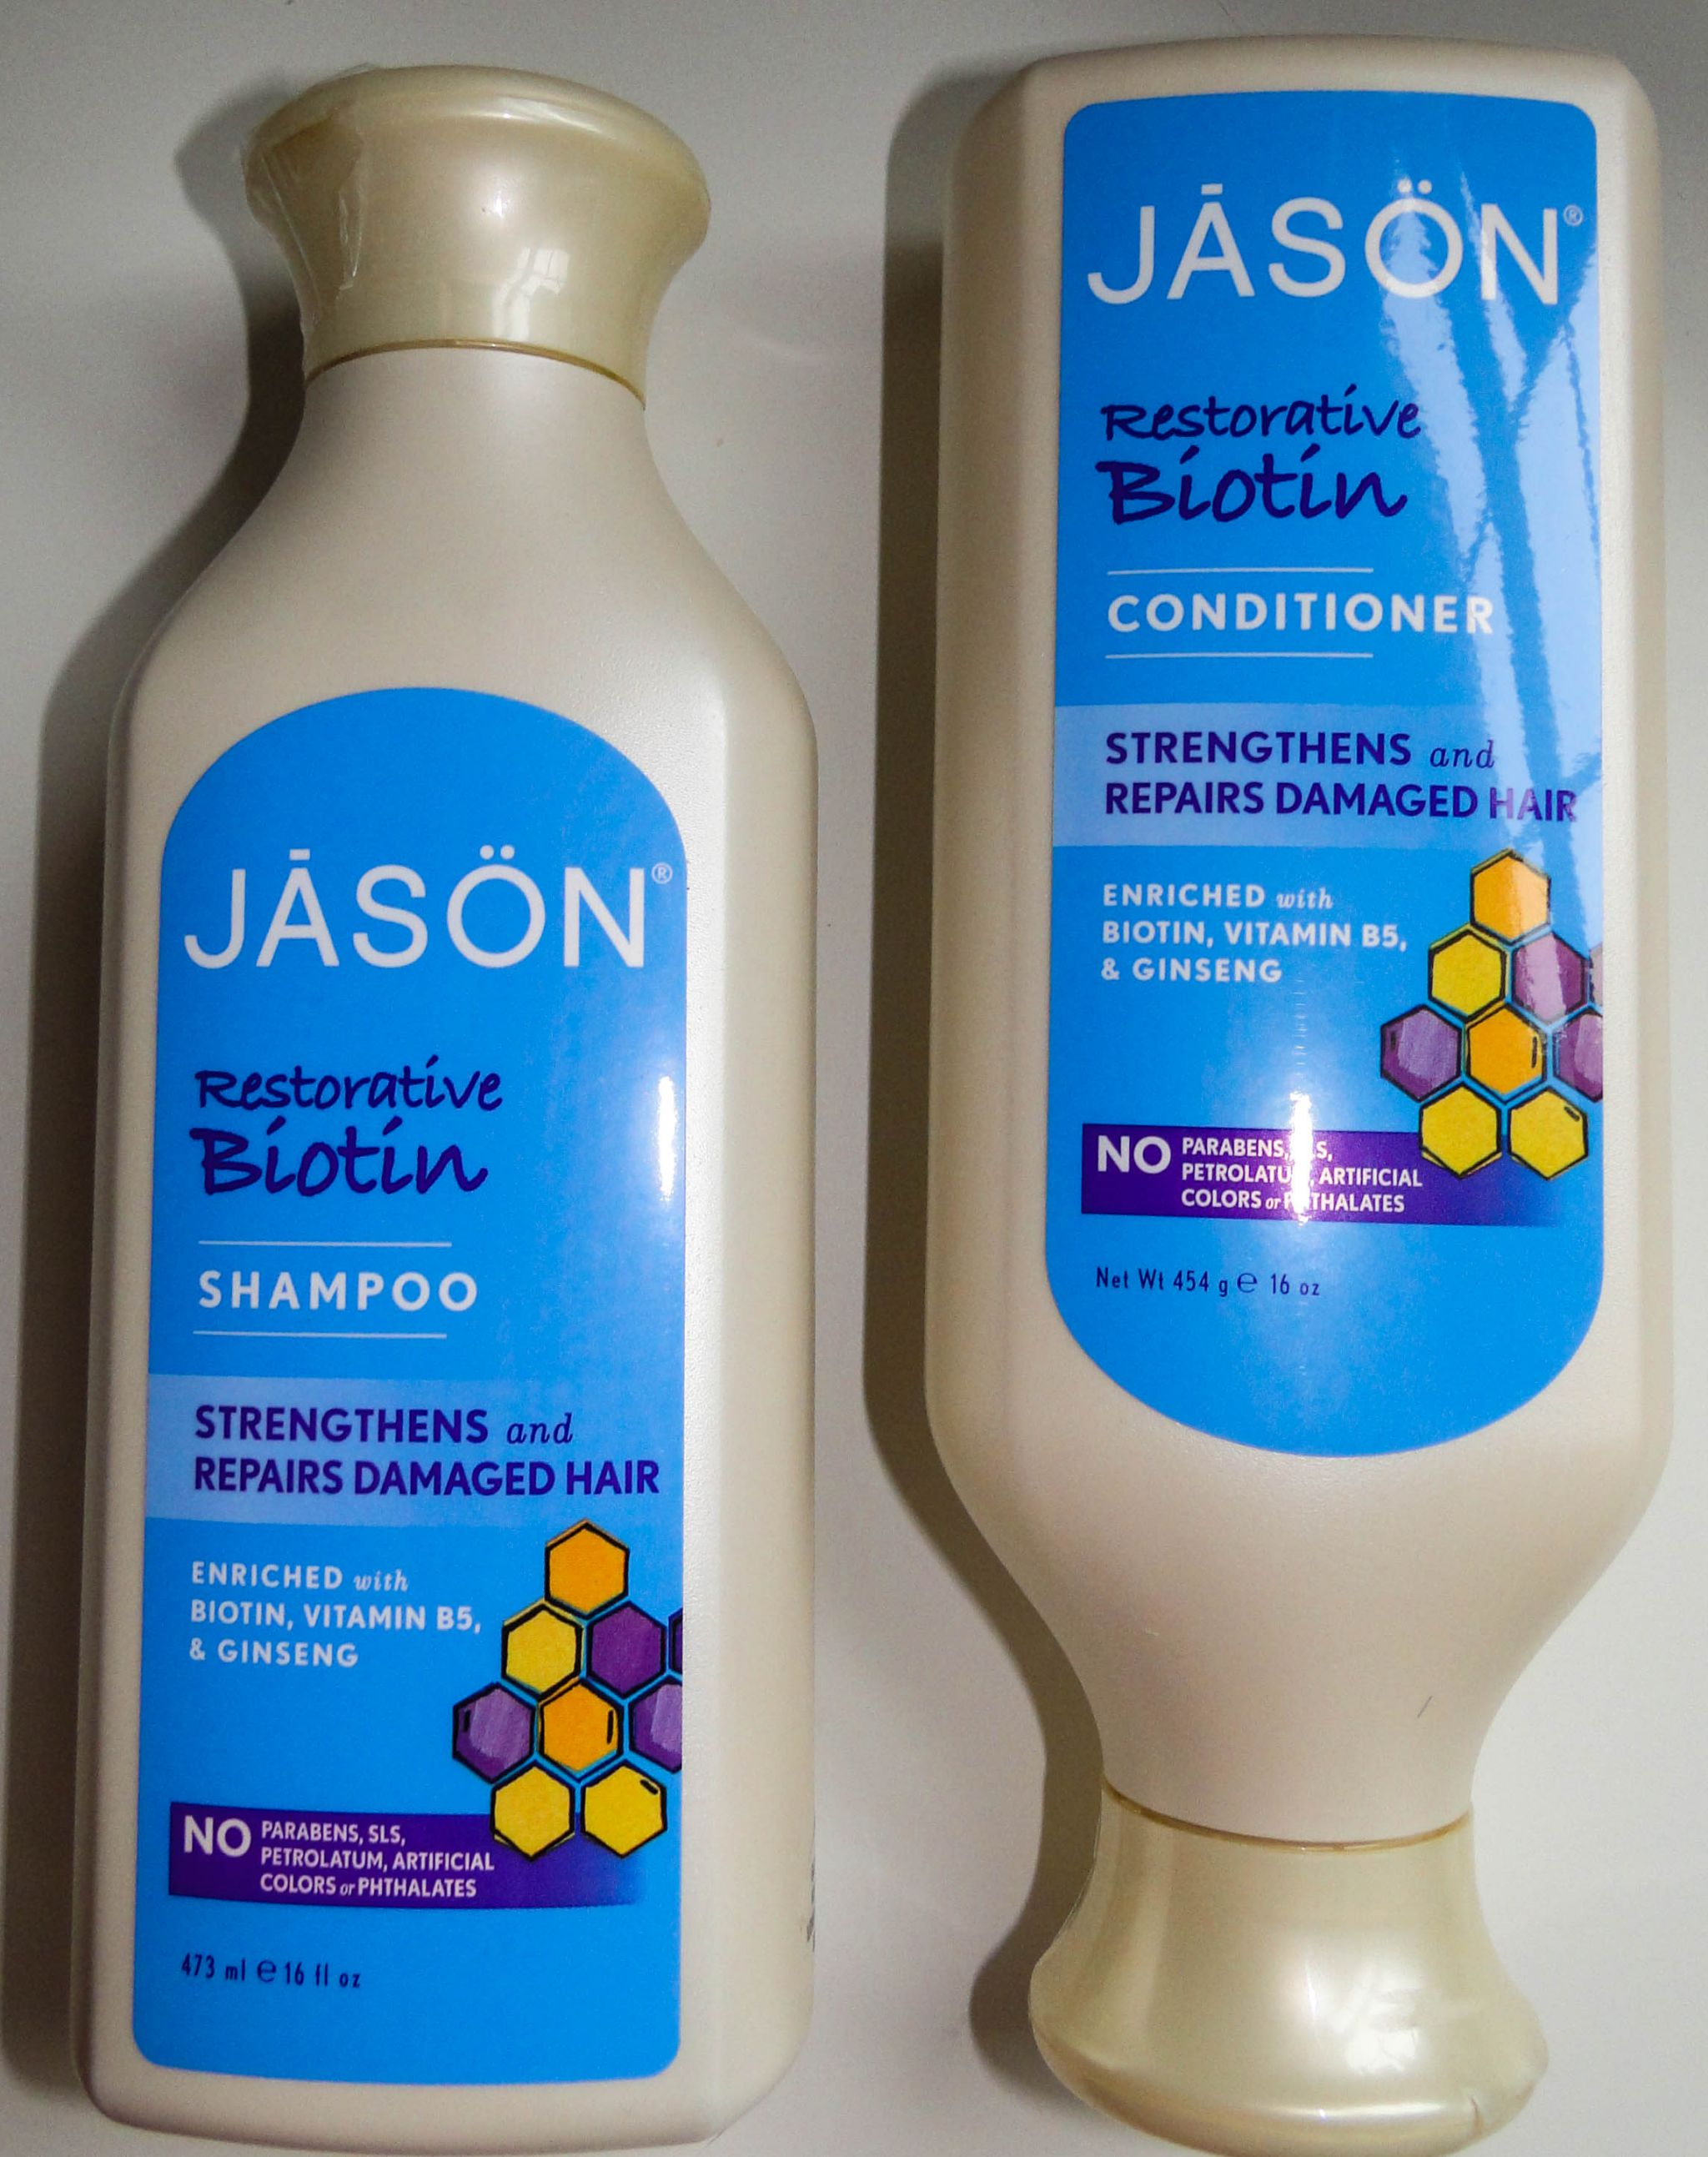 Jason Restorative Biotin Shampoo and Conditioner